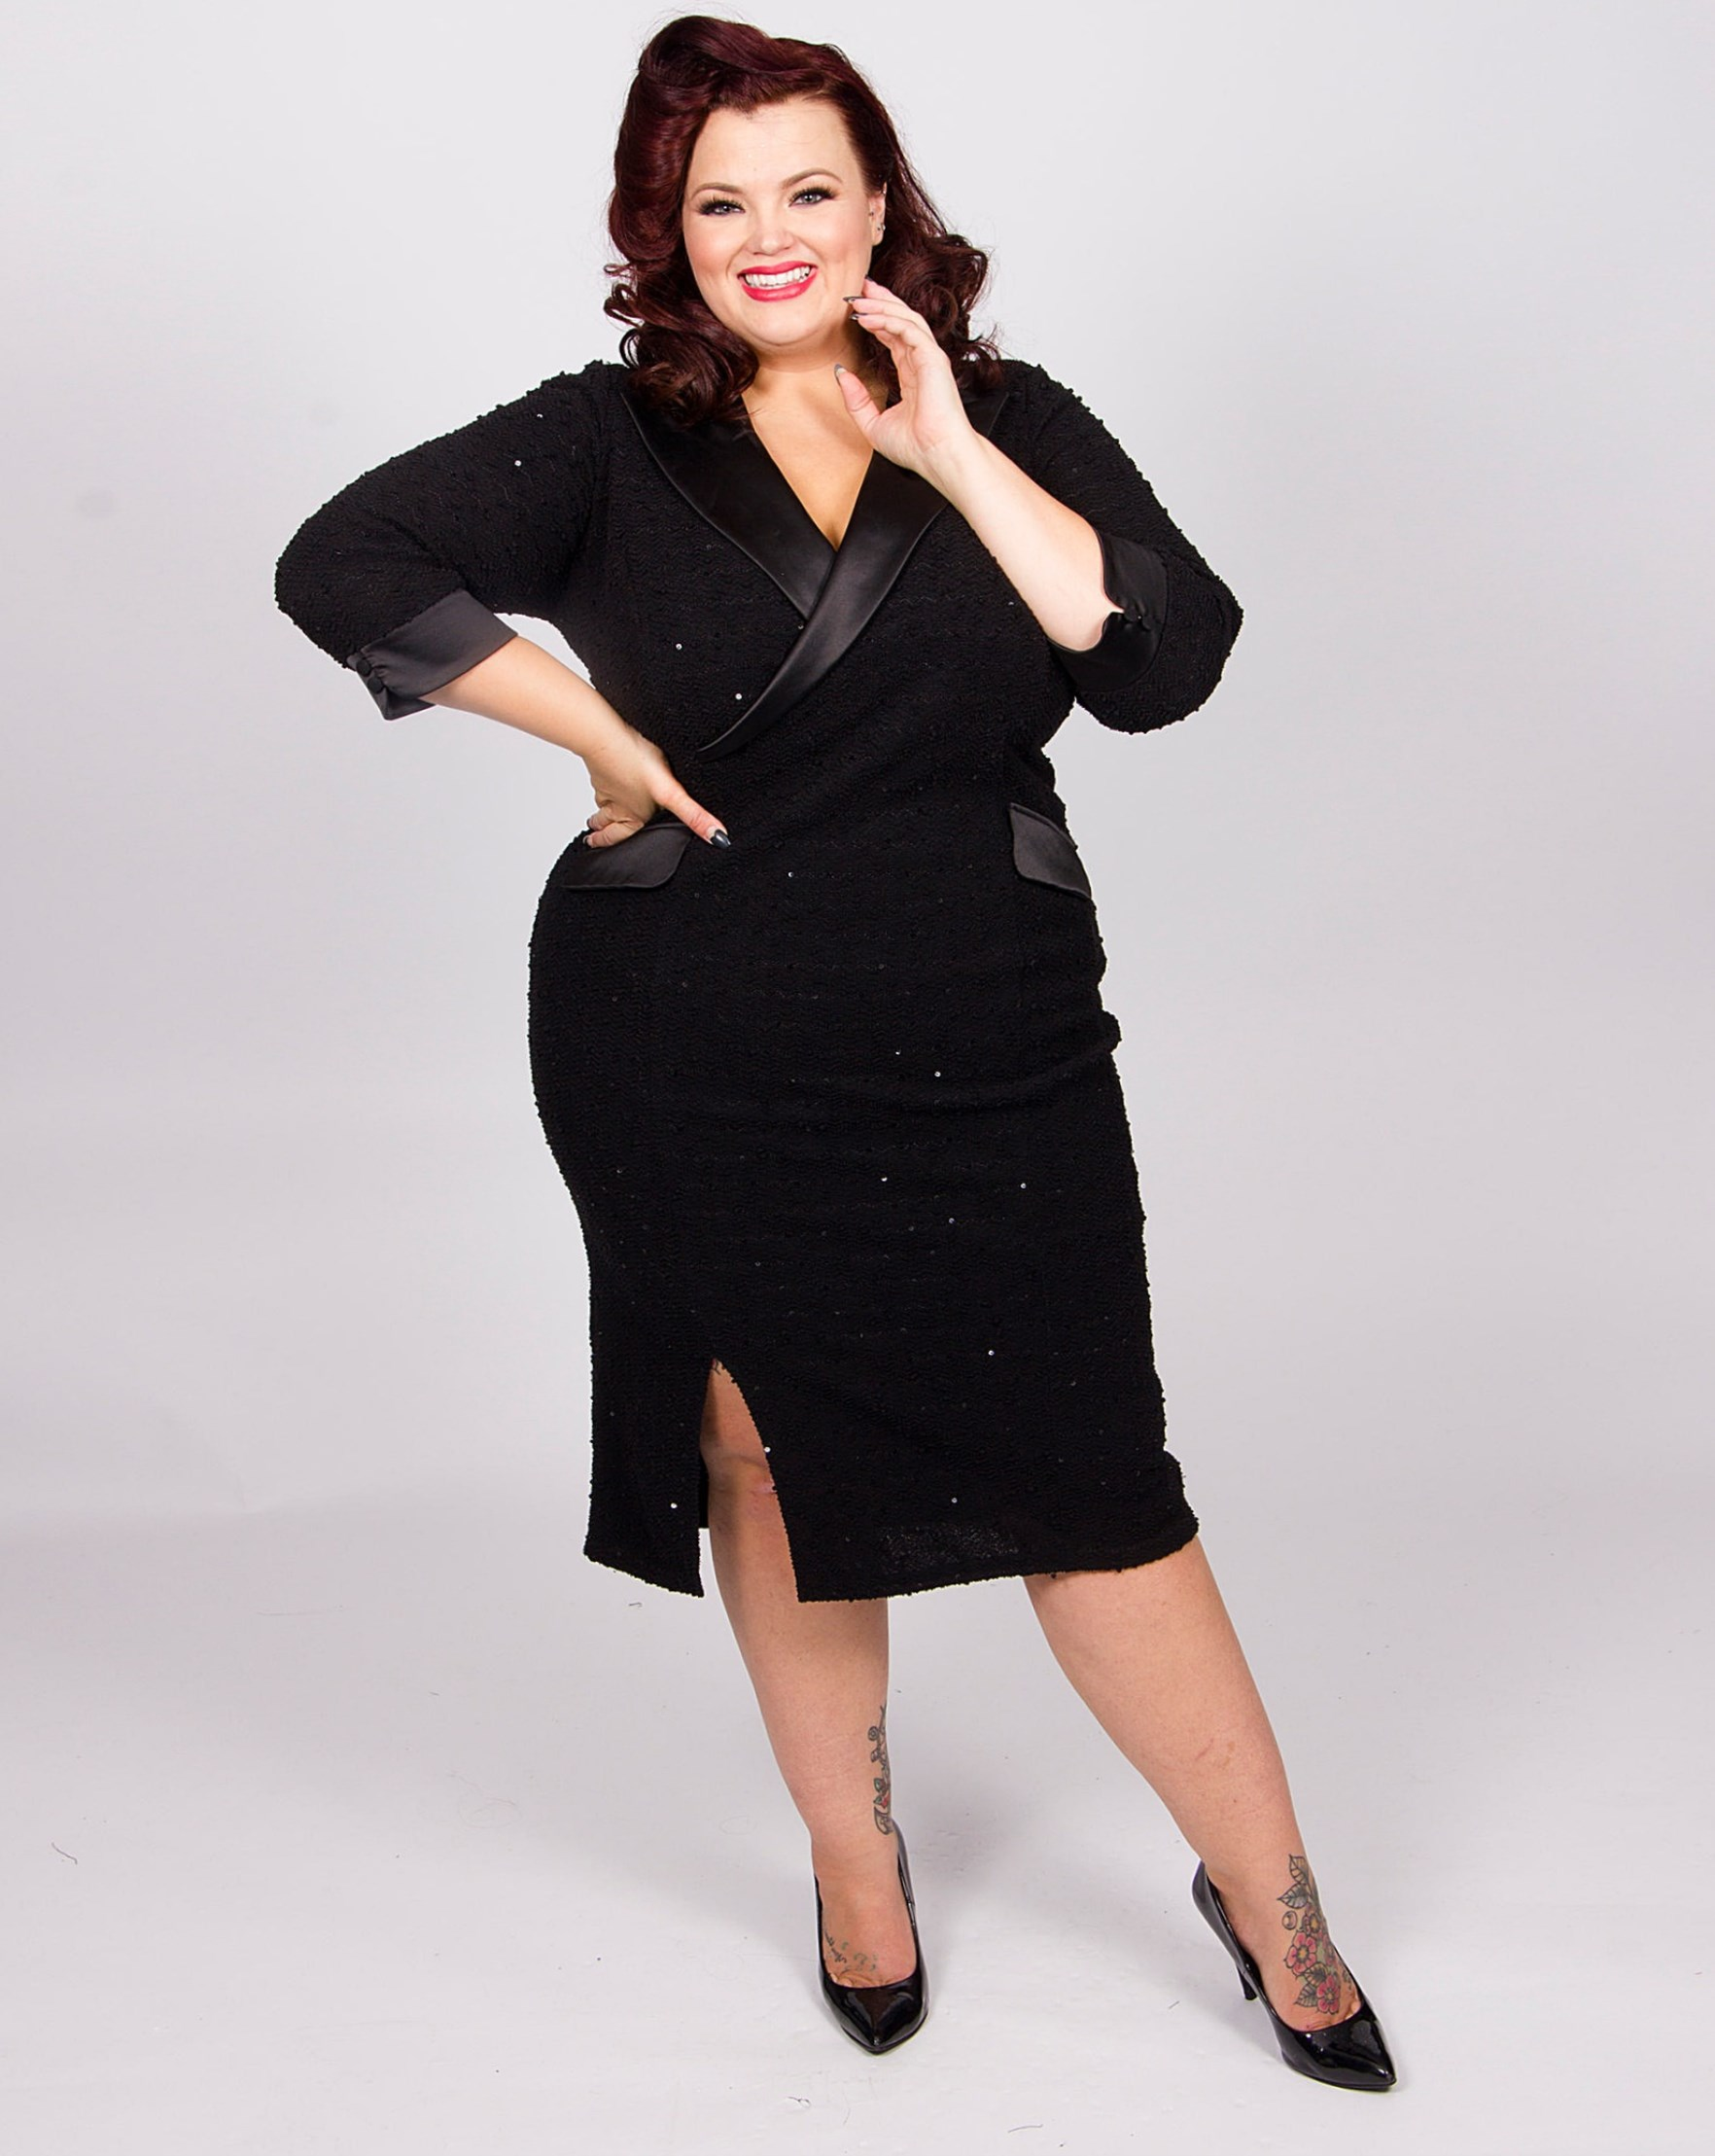 f040cebd940 This sparkly tuxedo dress will make you smile with its shine and smooth  collars. It s great for a plus size woman who isn t afraid to shine at a  party